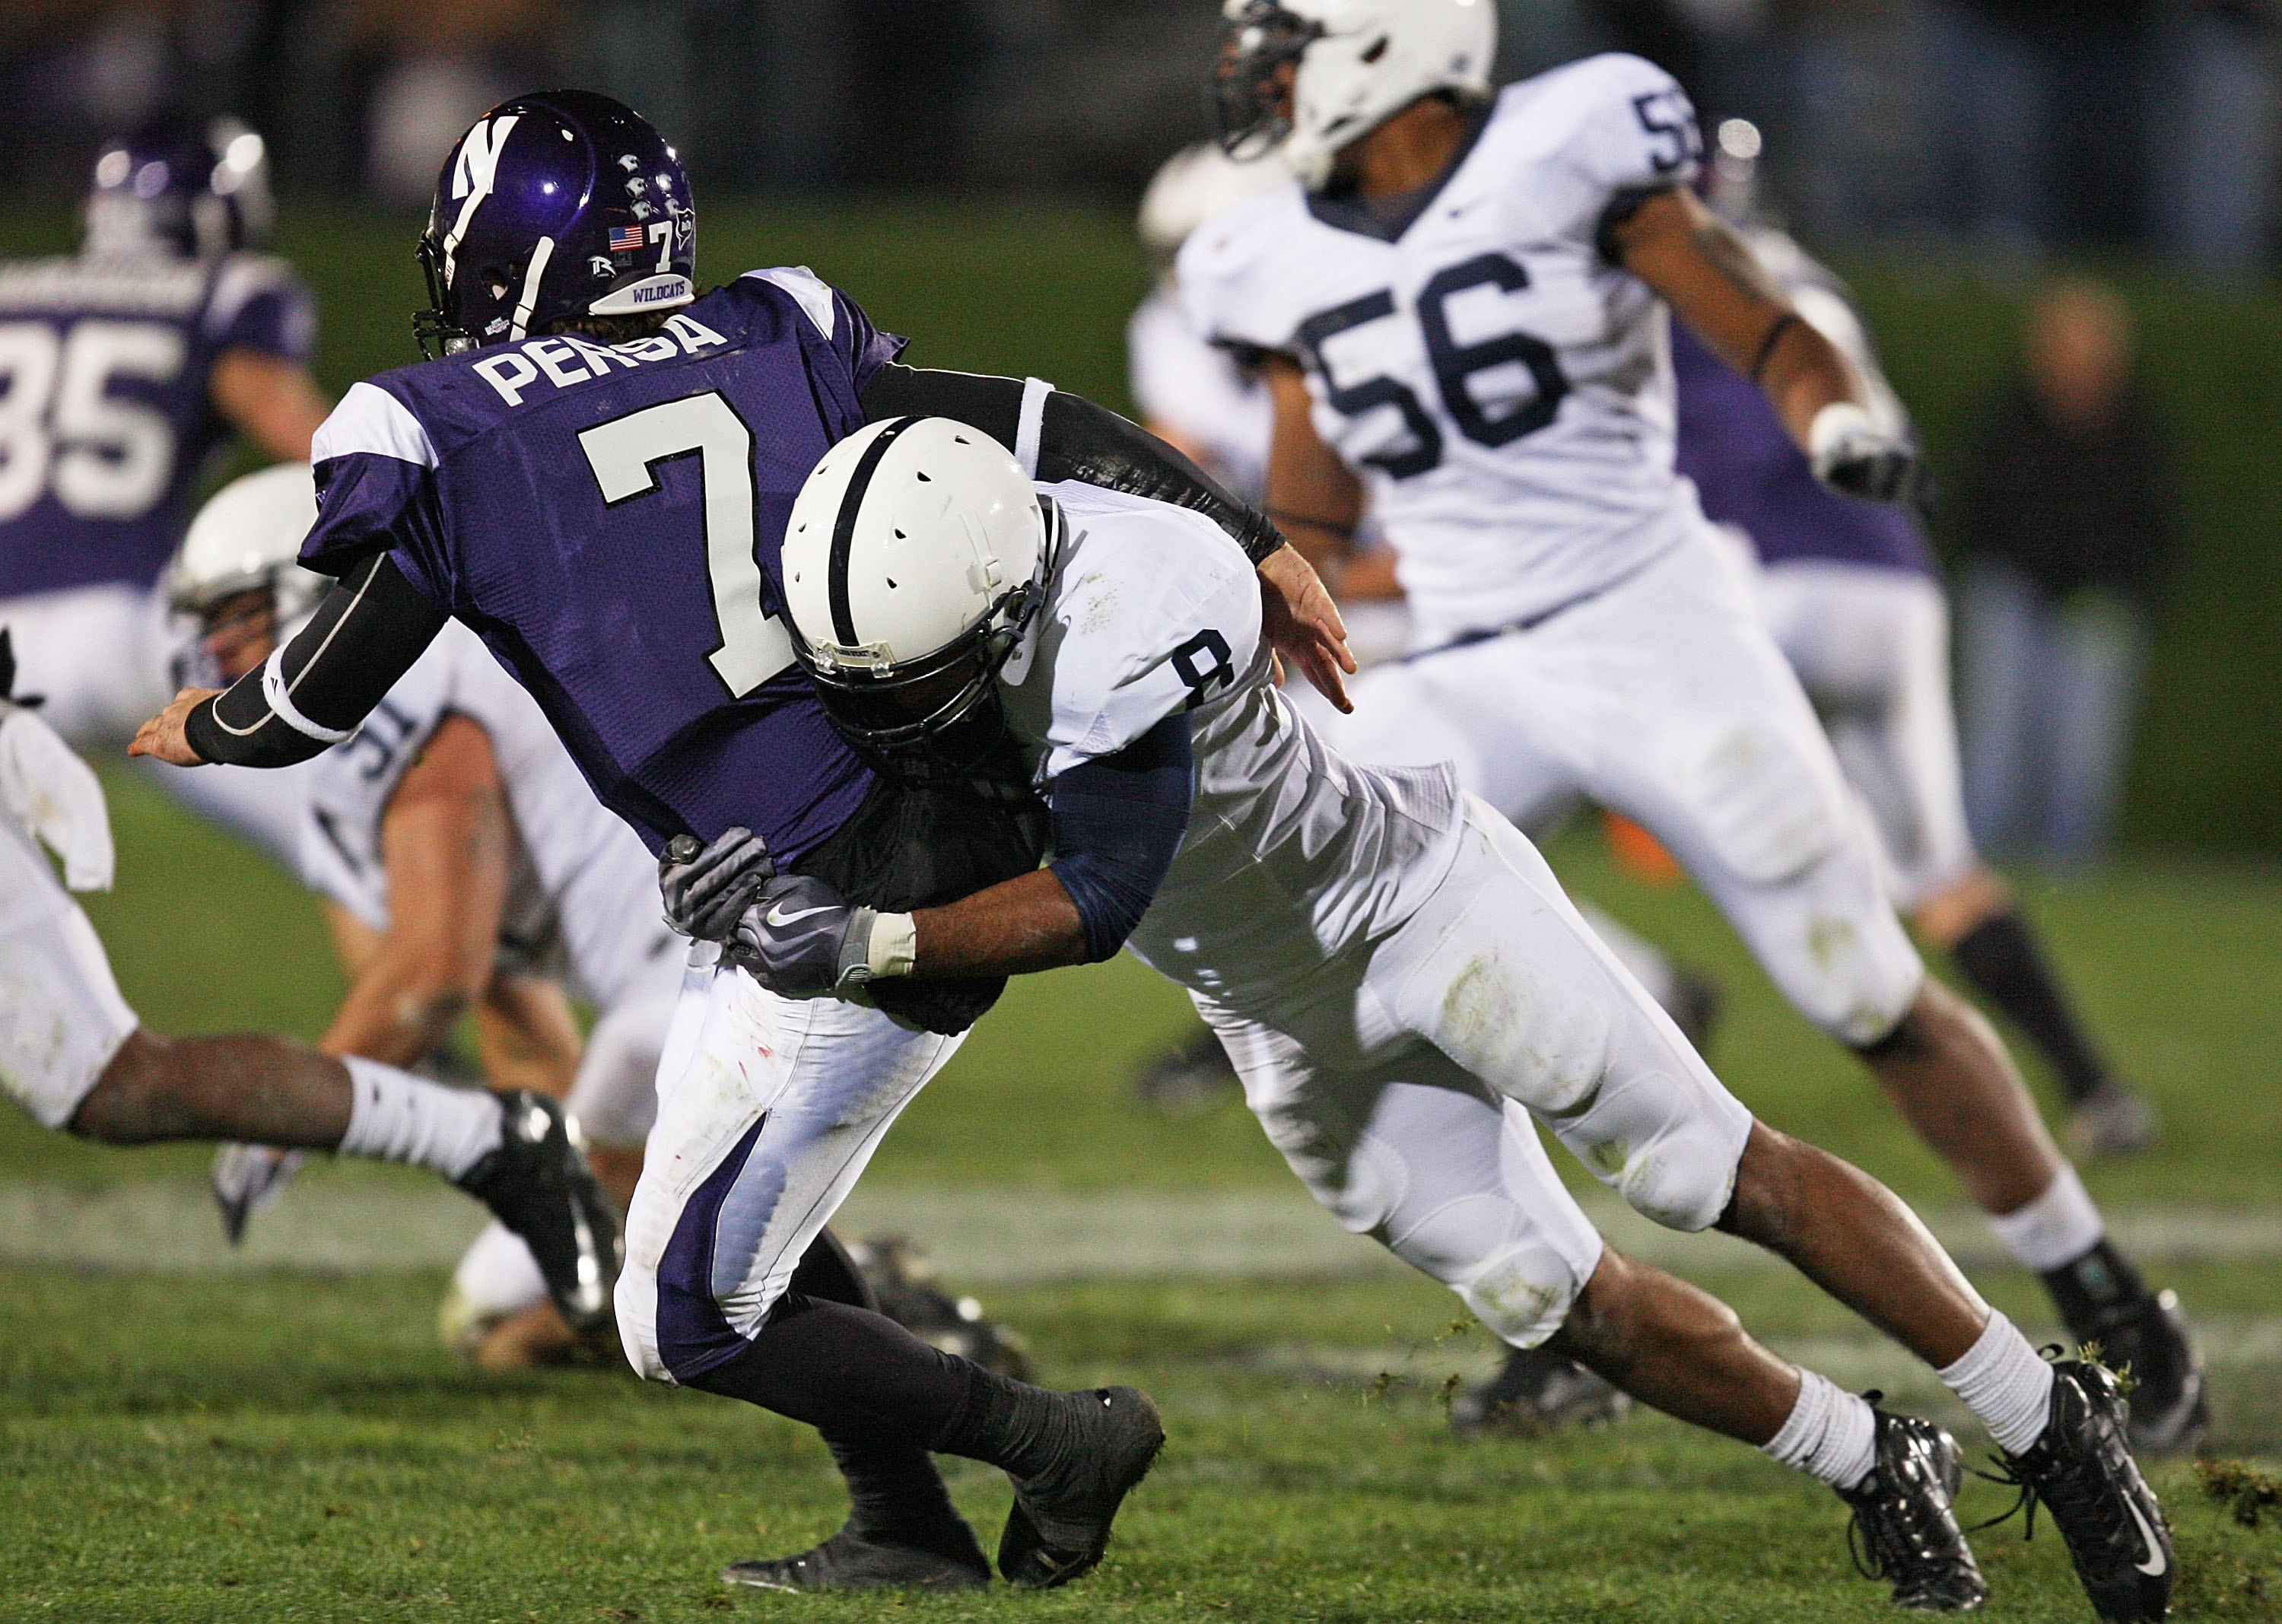 EVANSTON, IL - OCTOBER 31: Dan Persa #7 of the Northwestern Wildcats is hit by D'Anton Lynn #8 of the Penn State Nittany Lions at Ryan Field on October 31, 2009 in Evanston, Illinois. Penn State defeated Northwestern 34-13. (Photo by Jonathan Daniel/Getty